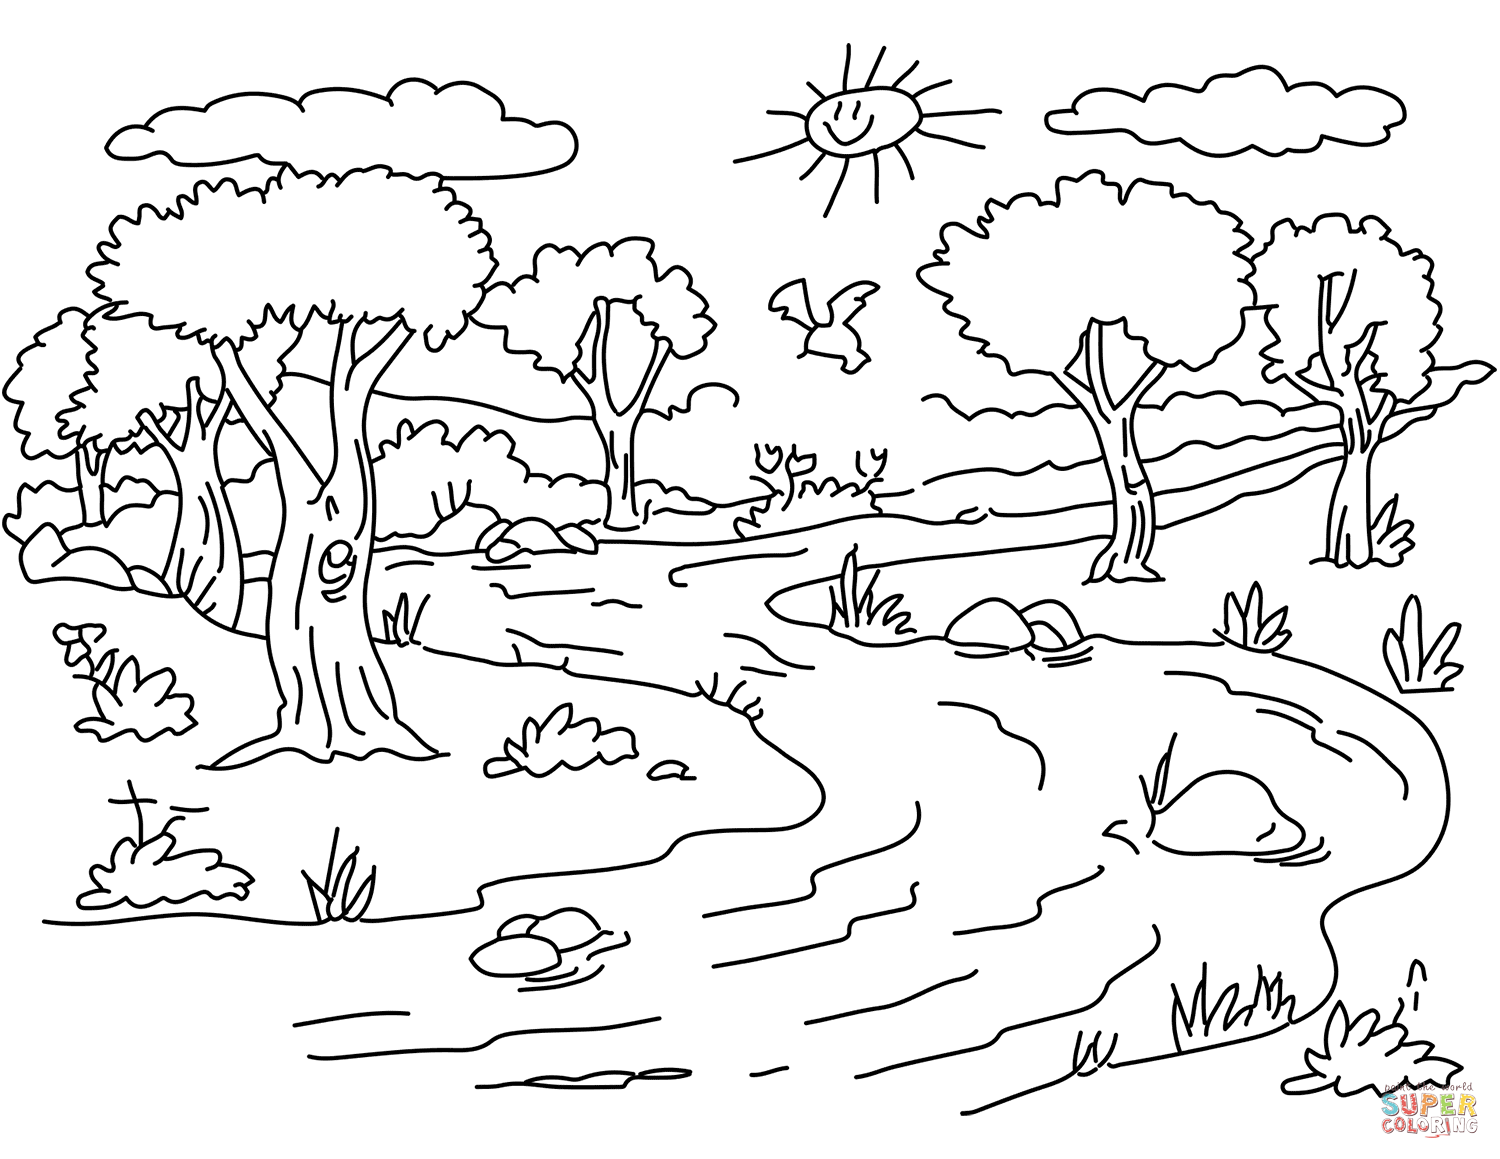 simple nature coloring pages nature drawing for kids at getdrawings free download pages nature simple coloring